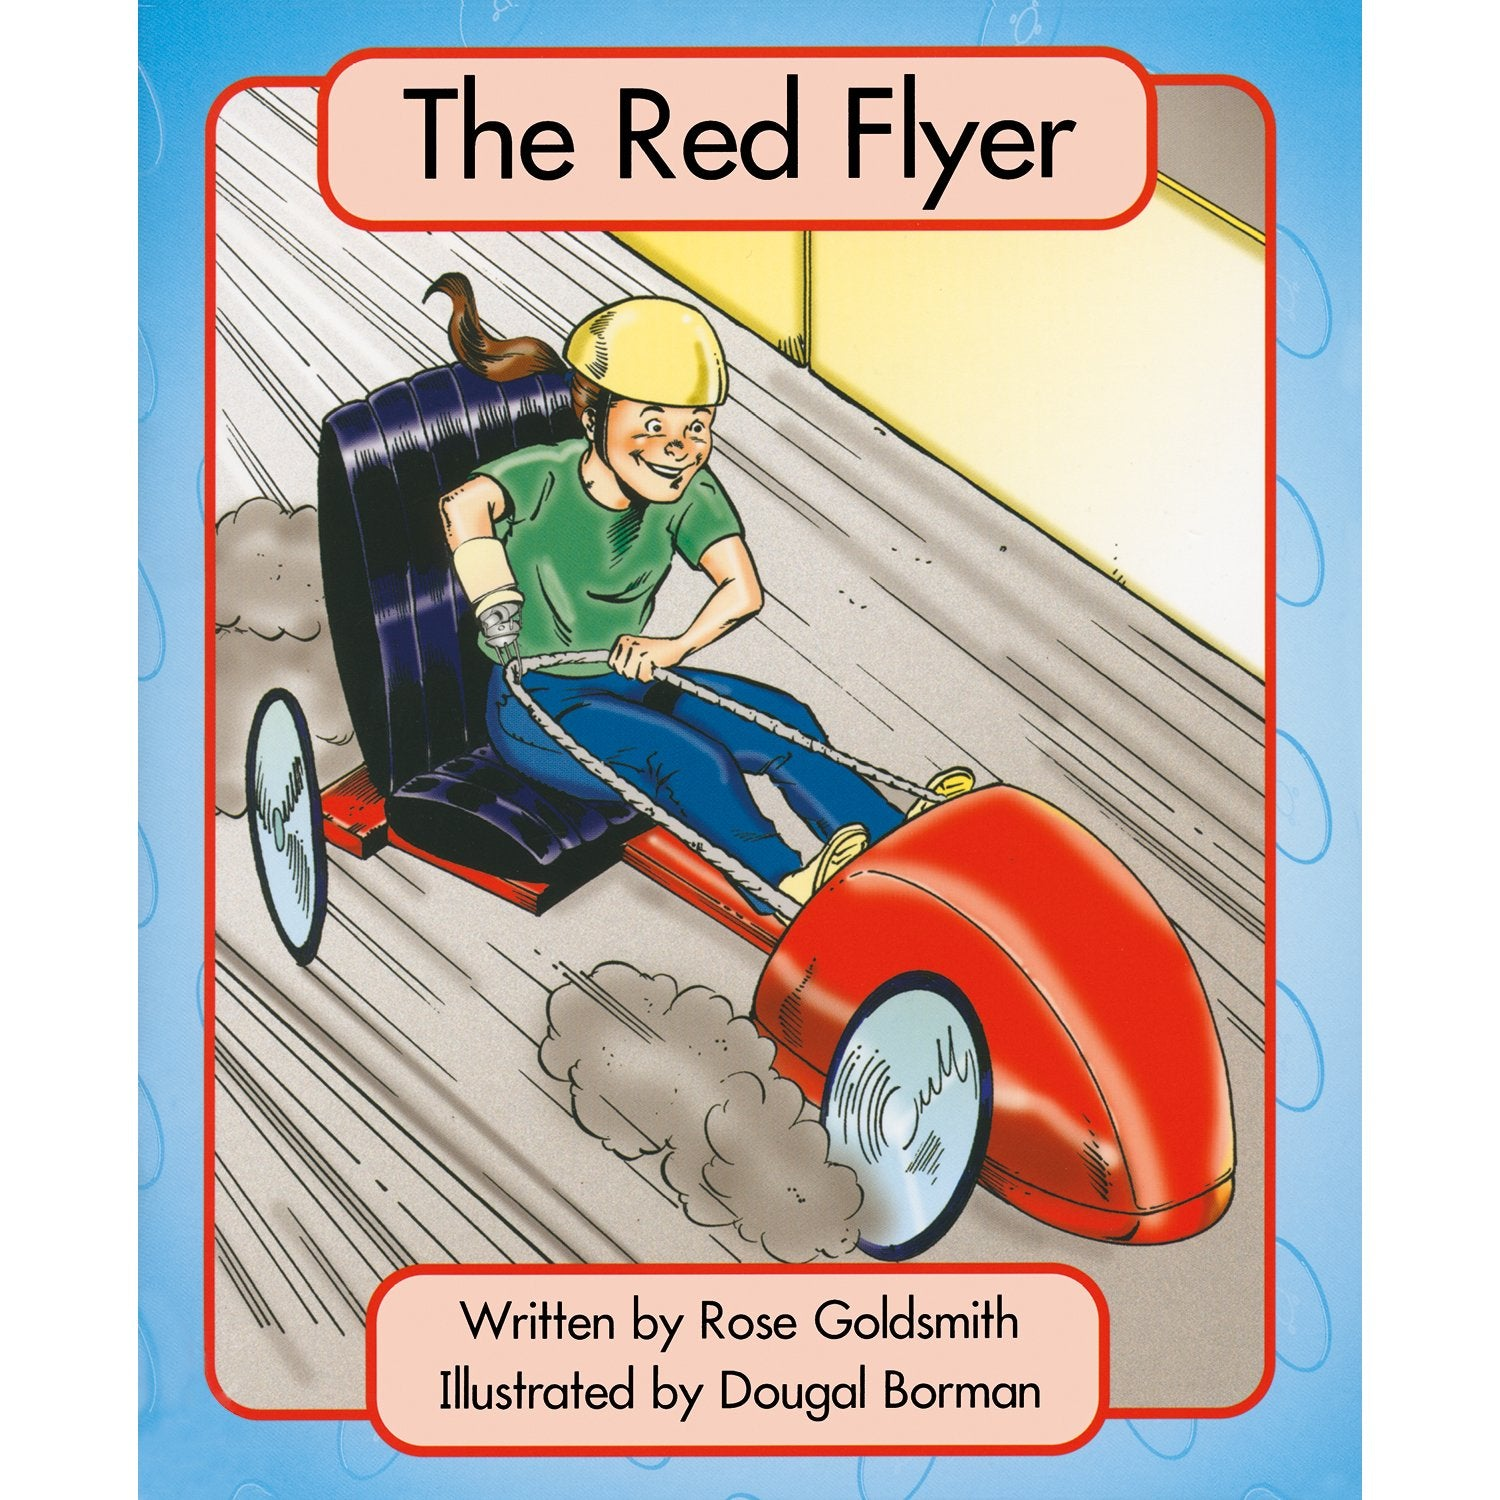 The Red Flyer